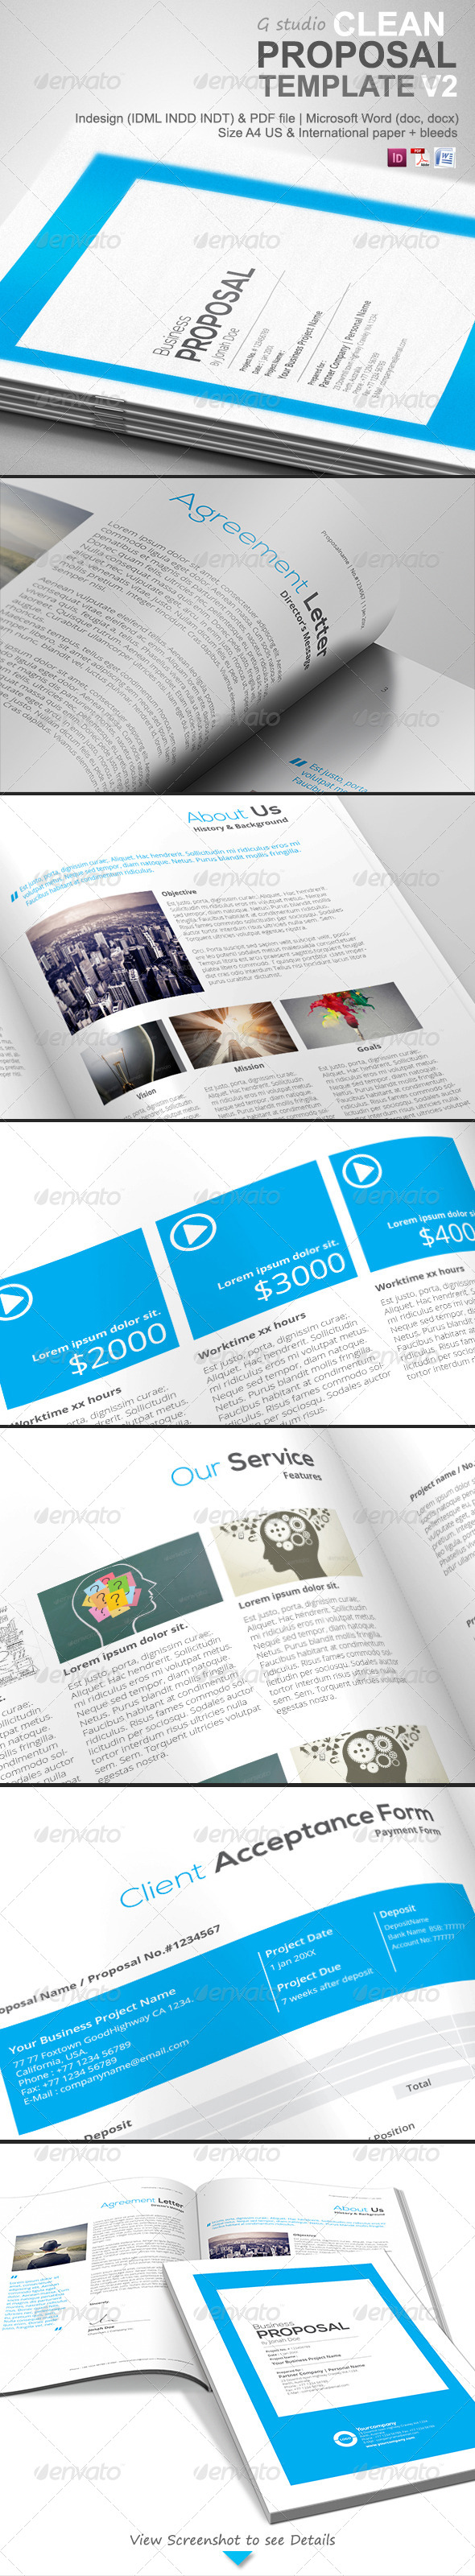 Gstudio Clean Proposal Template V2 - Proposals & Invoices Stationery